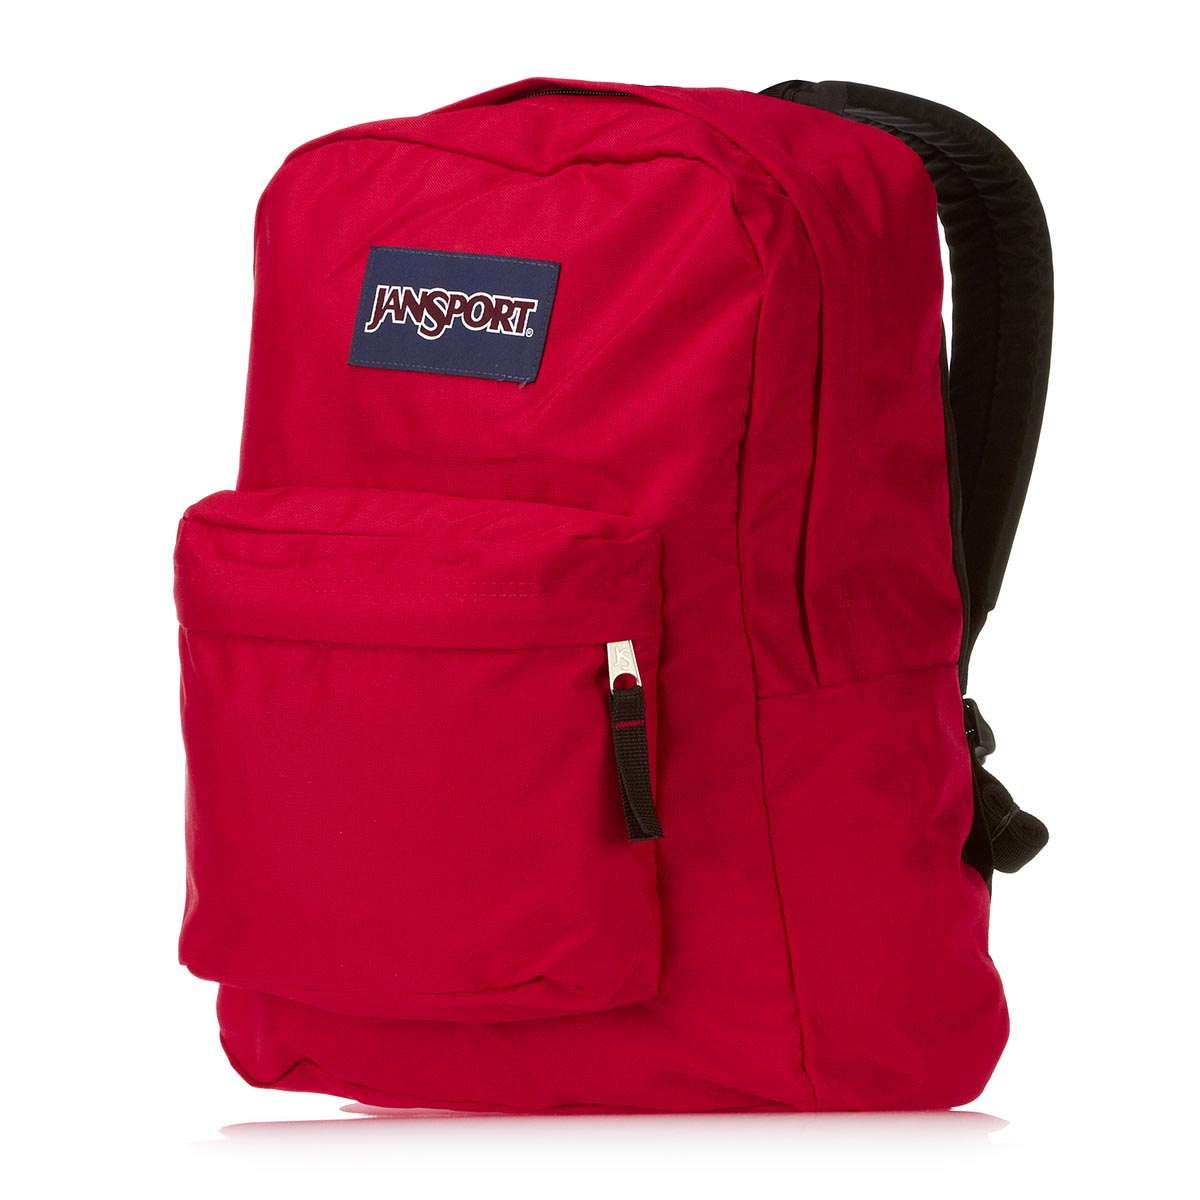 Jansport Red Backpack ZwXv7x52